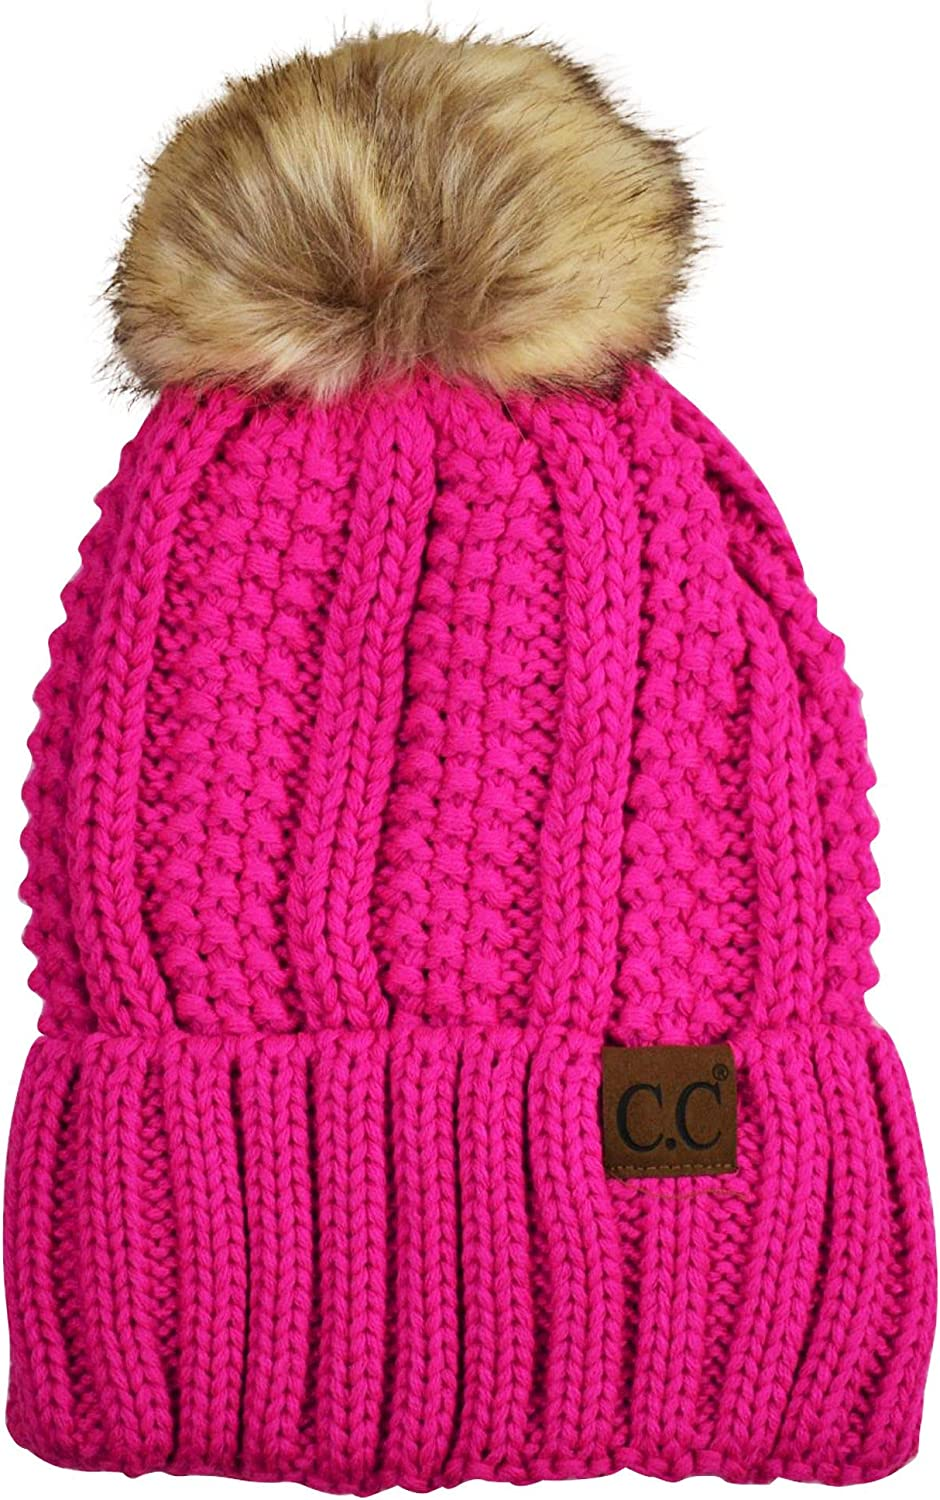 C.C Thick Cable Max 77% OFF Knit Spring new work one after another Faux Fuzzy Fur Pom C Fleece Skull Lined Cap